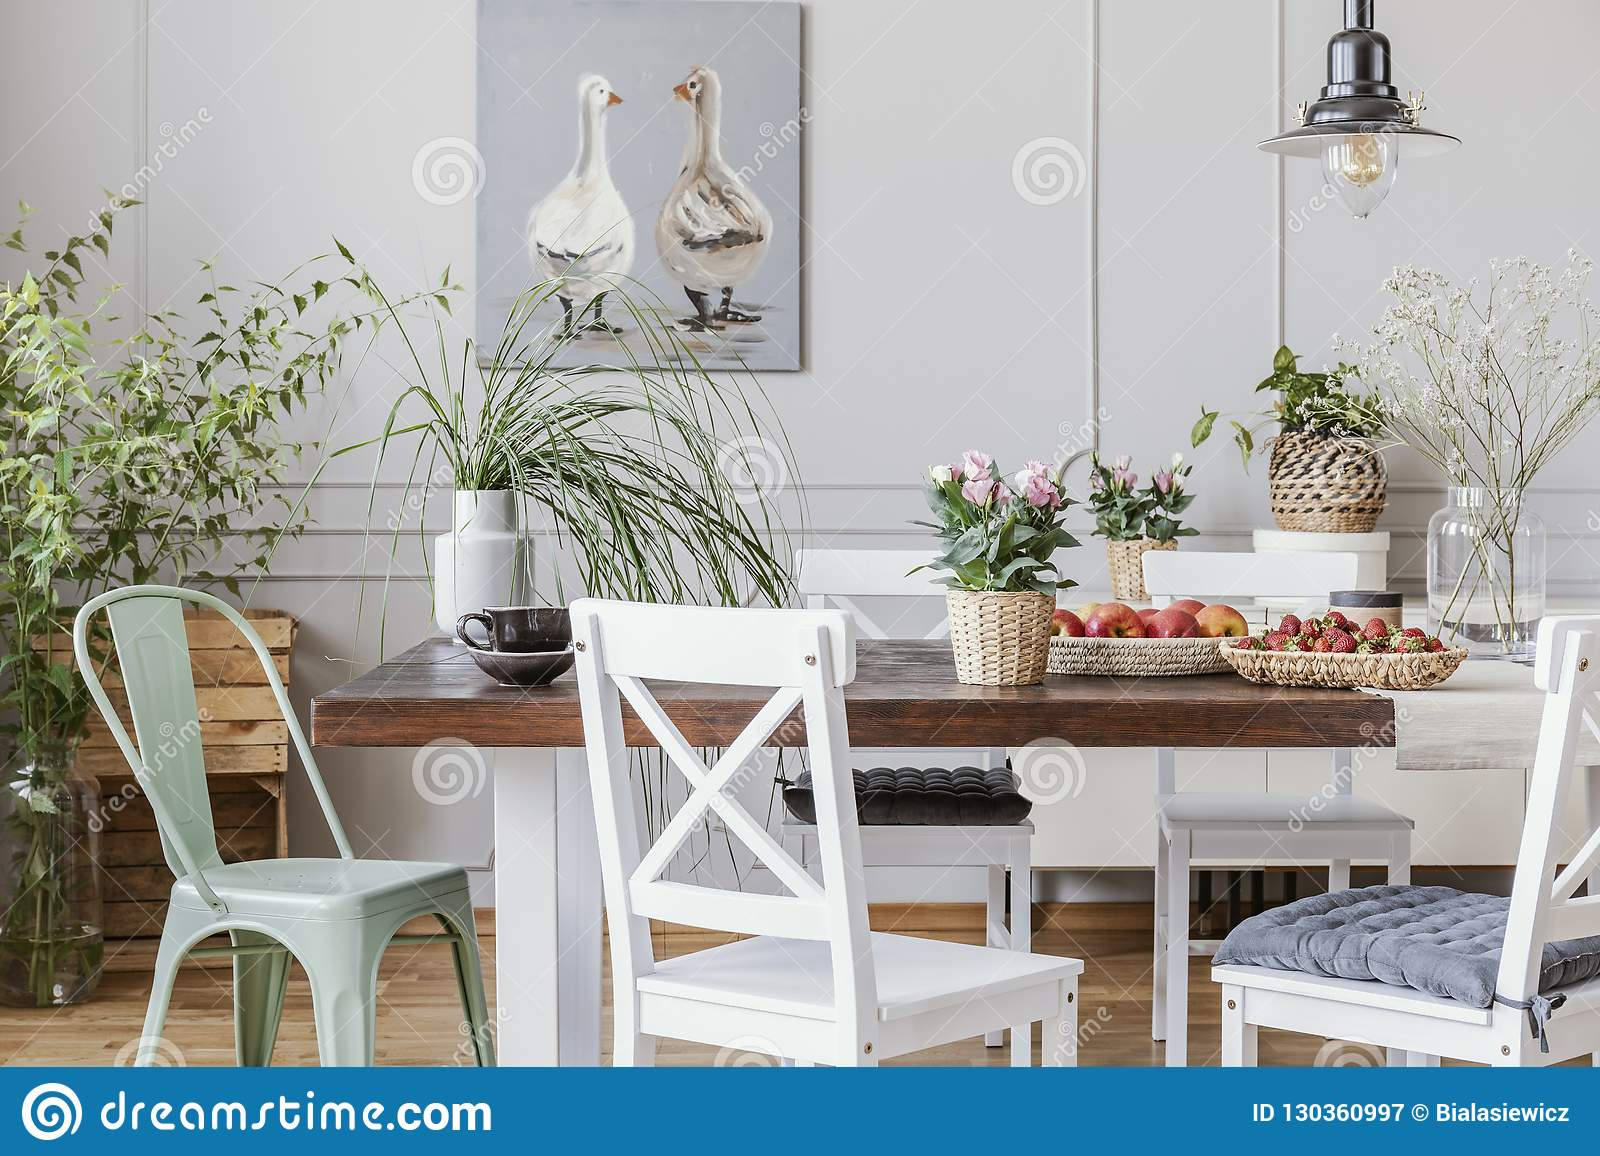 Rustic Dining Room With Long Table And White Chairs And Oil Painting